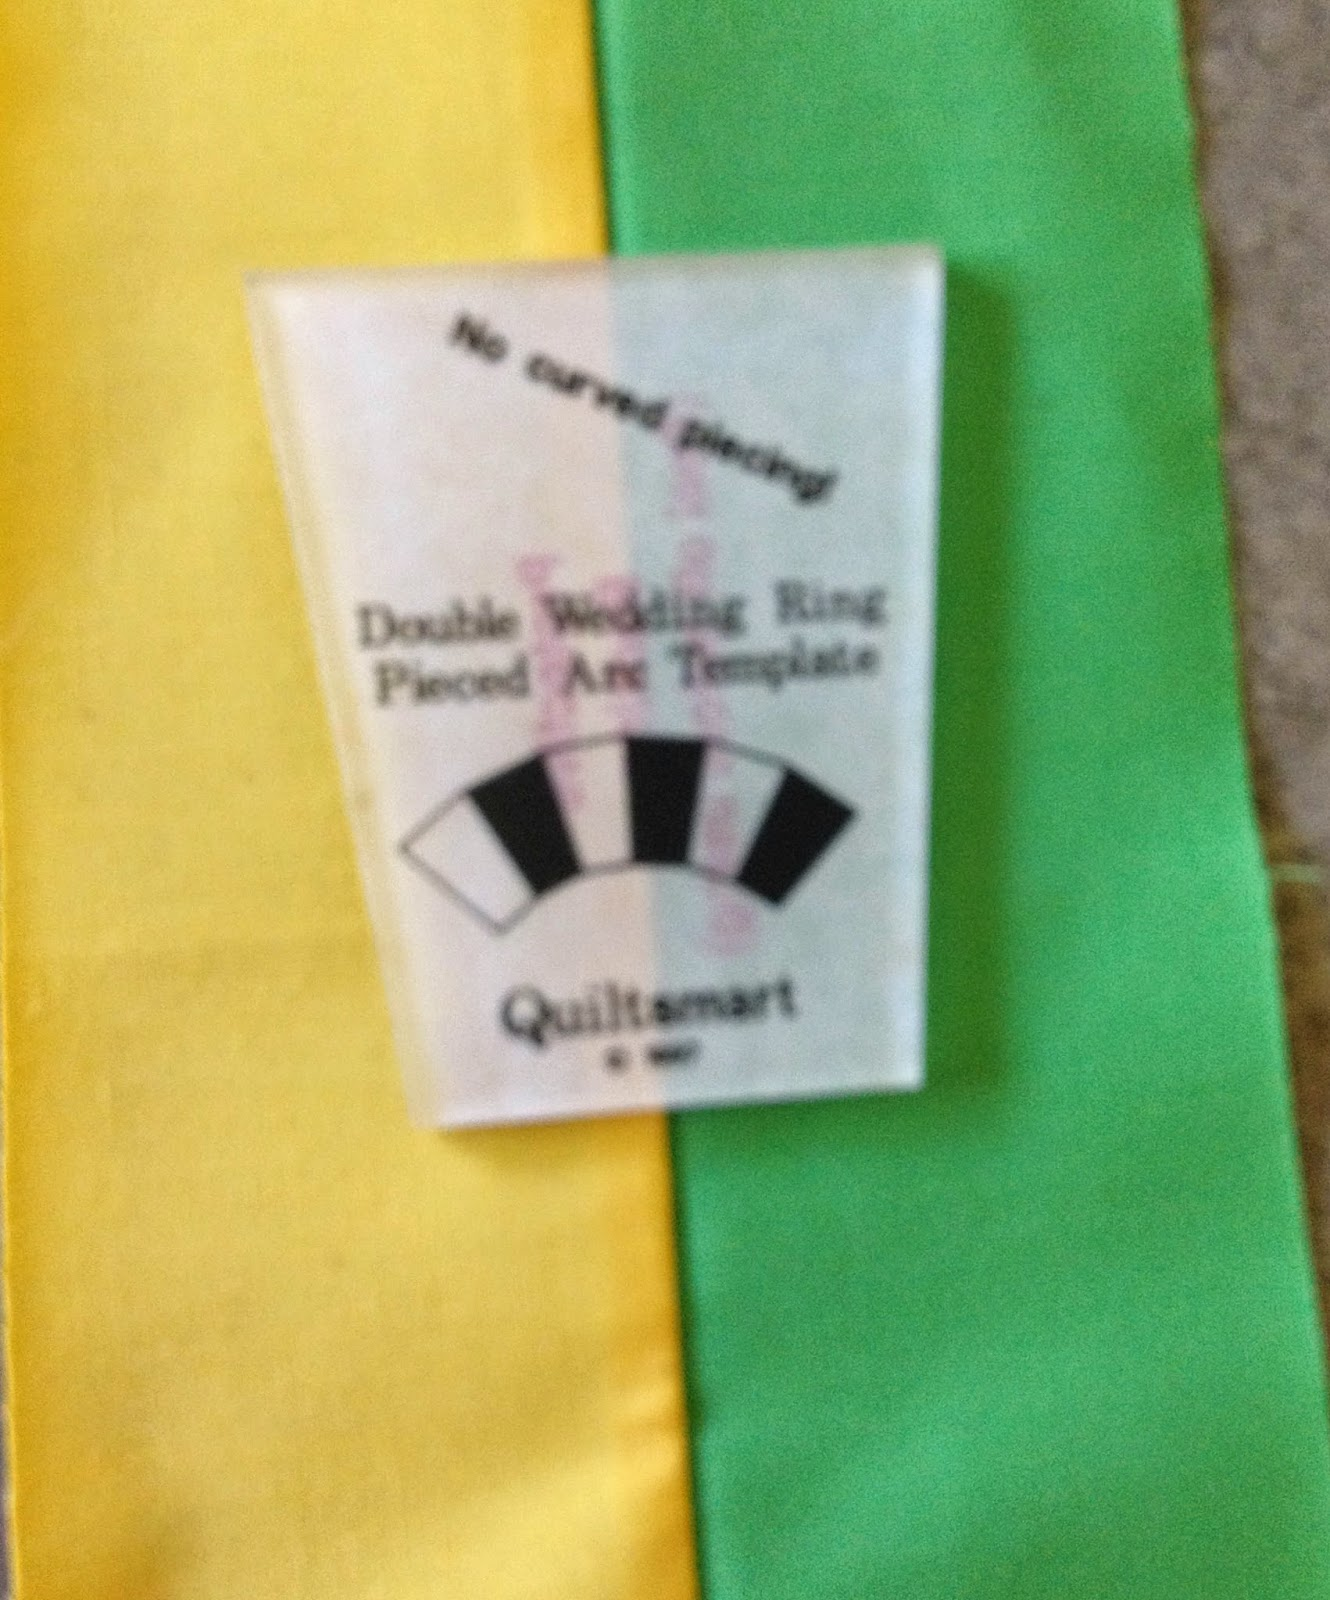 Quiltsmart: 3 Ingenious Ways To Utilize The Quiltsmart